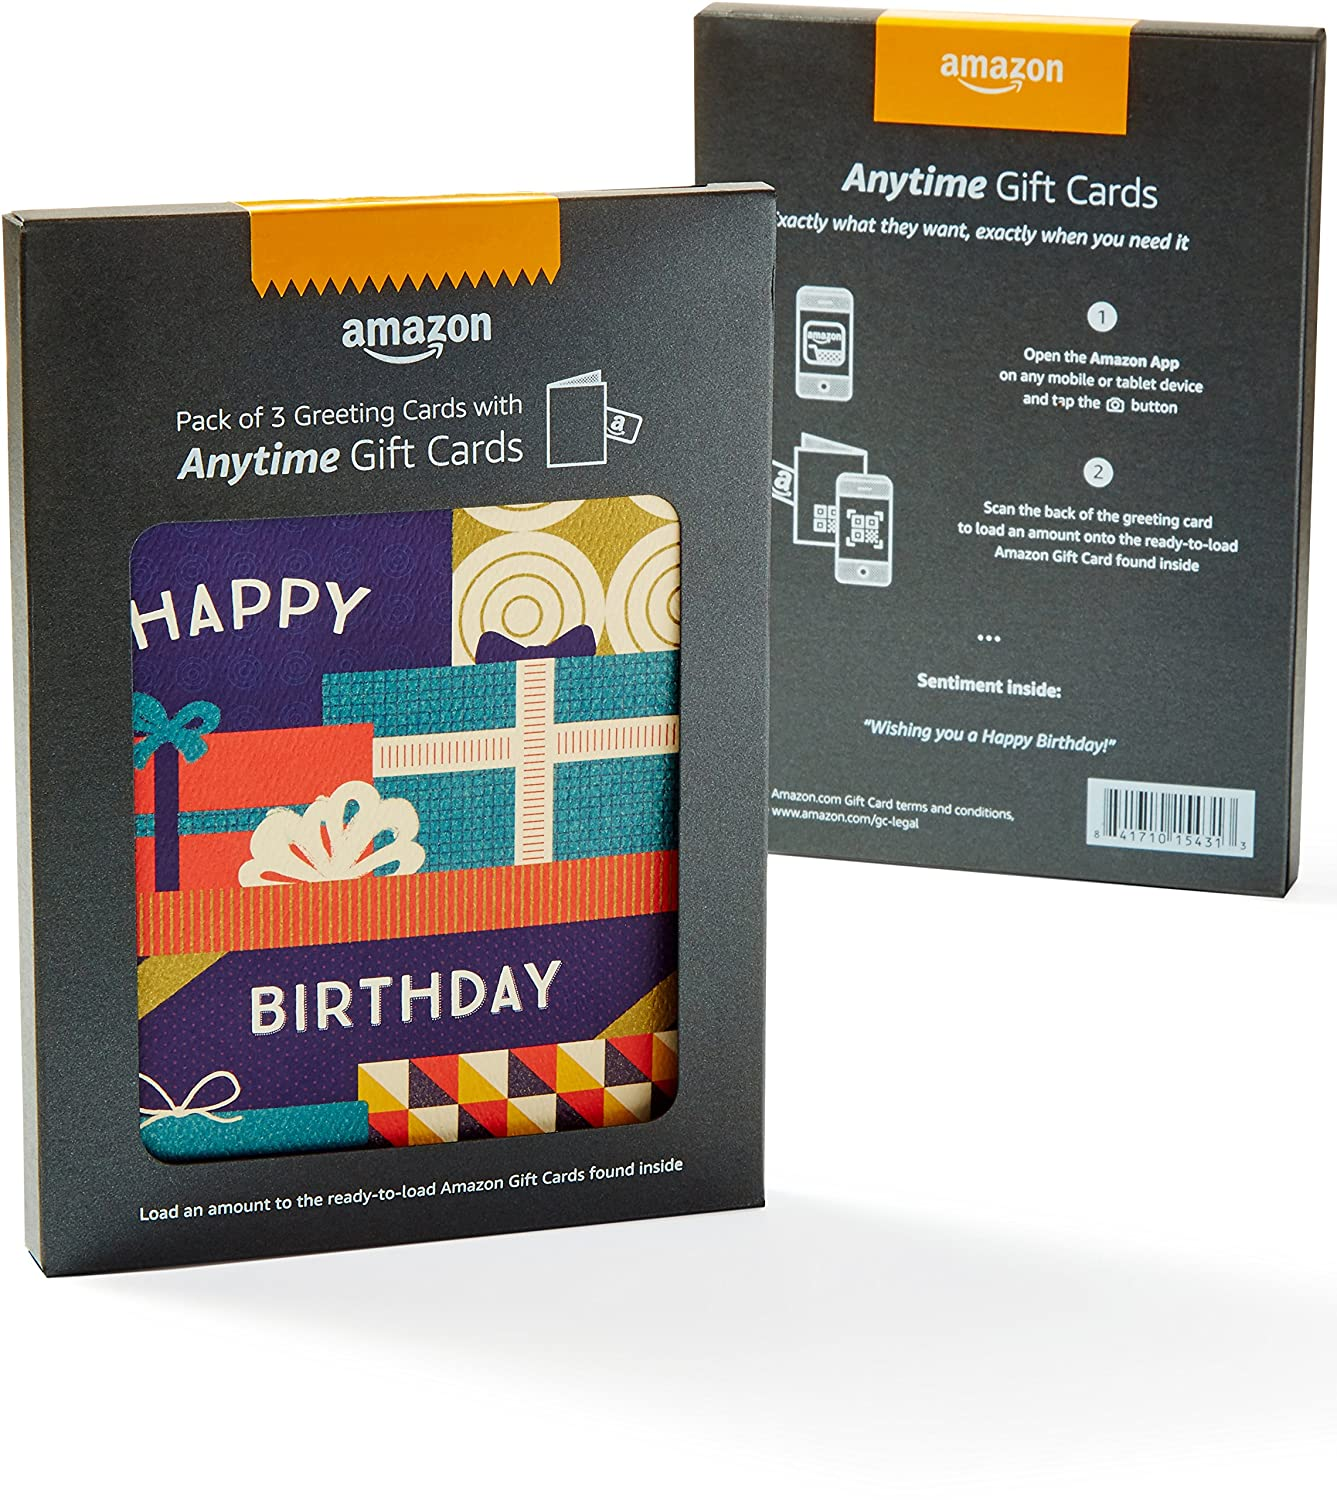 Amazon Happy Birthday Premium Greeting Card With Anytime Gift Pack Of 3 Cards